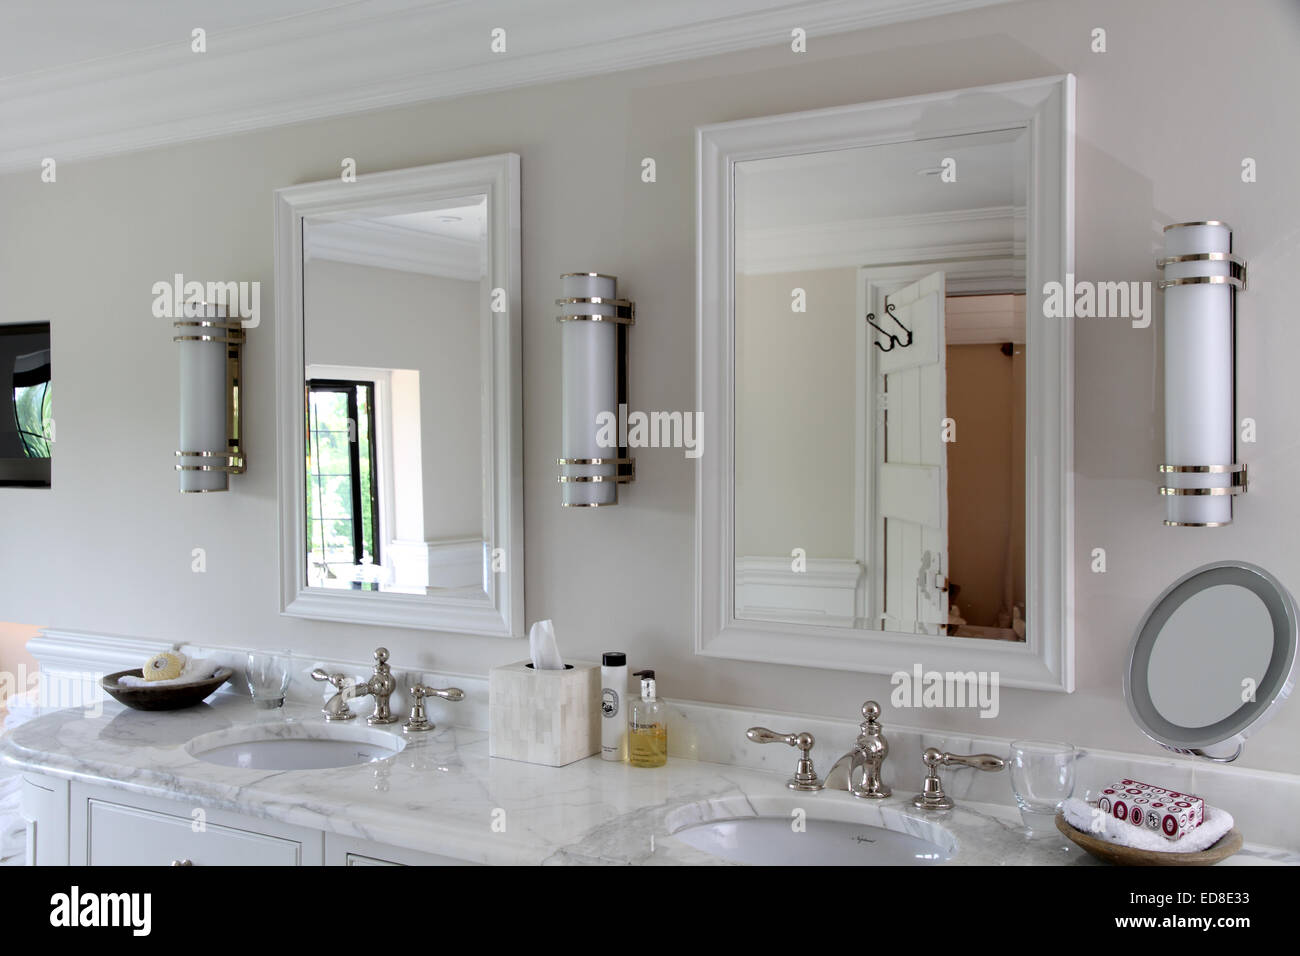 Combined Bath Taps Faucet And Hand Shower Stock Photos & Combined ...